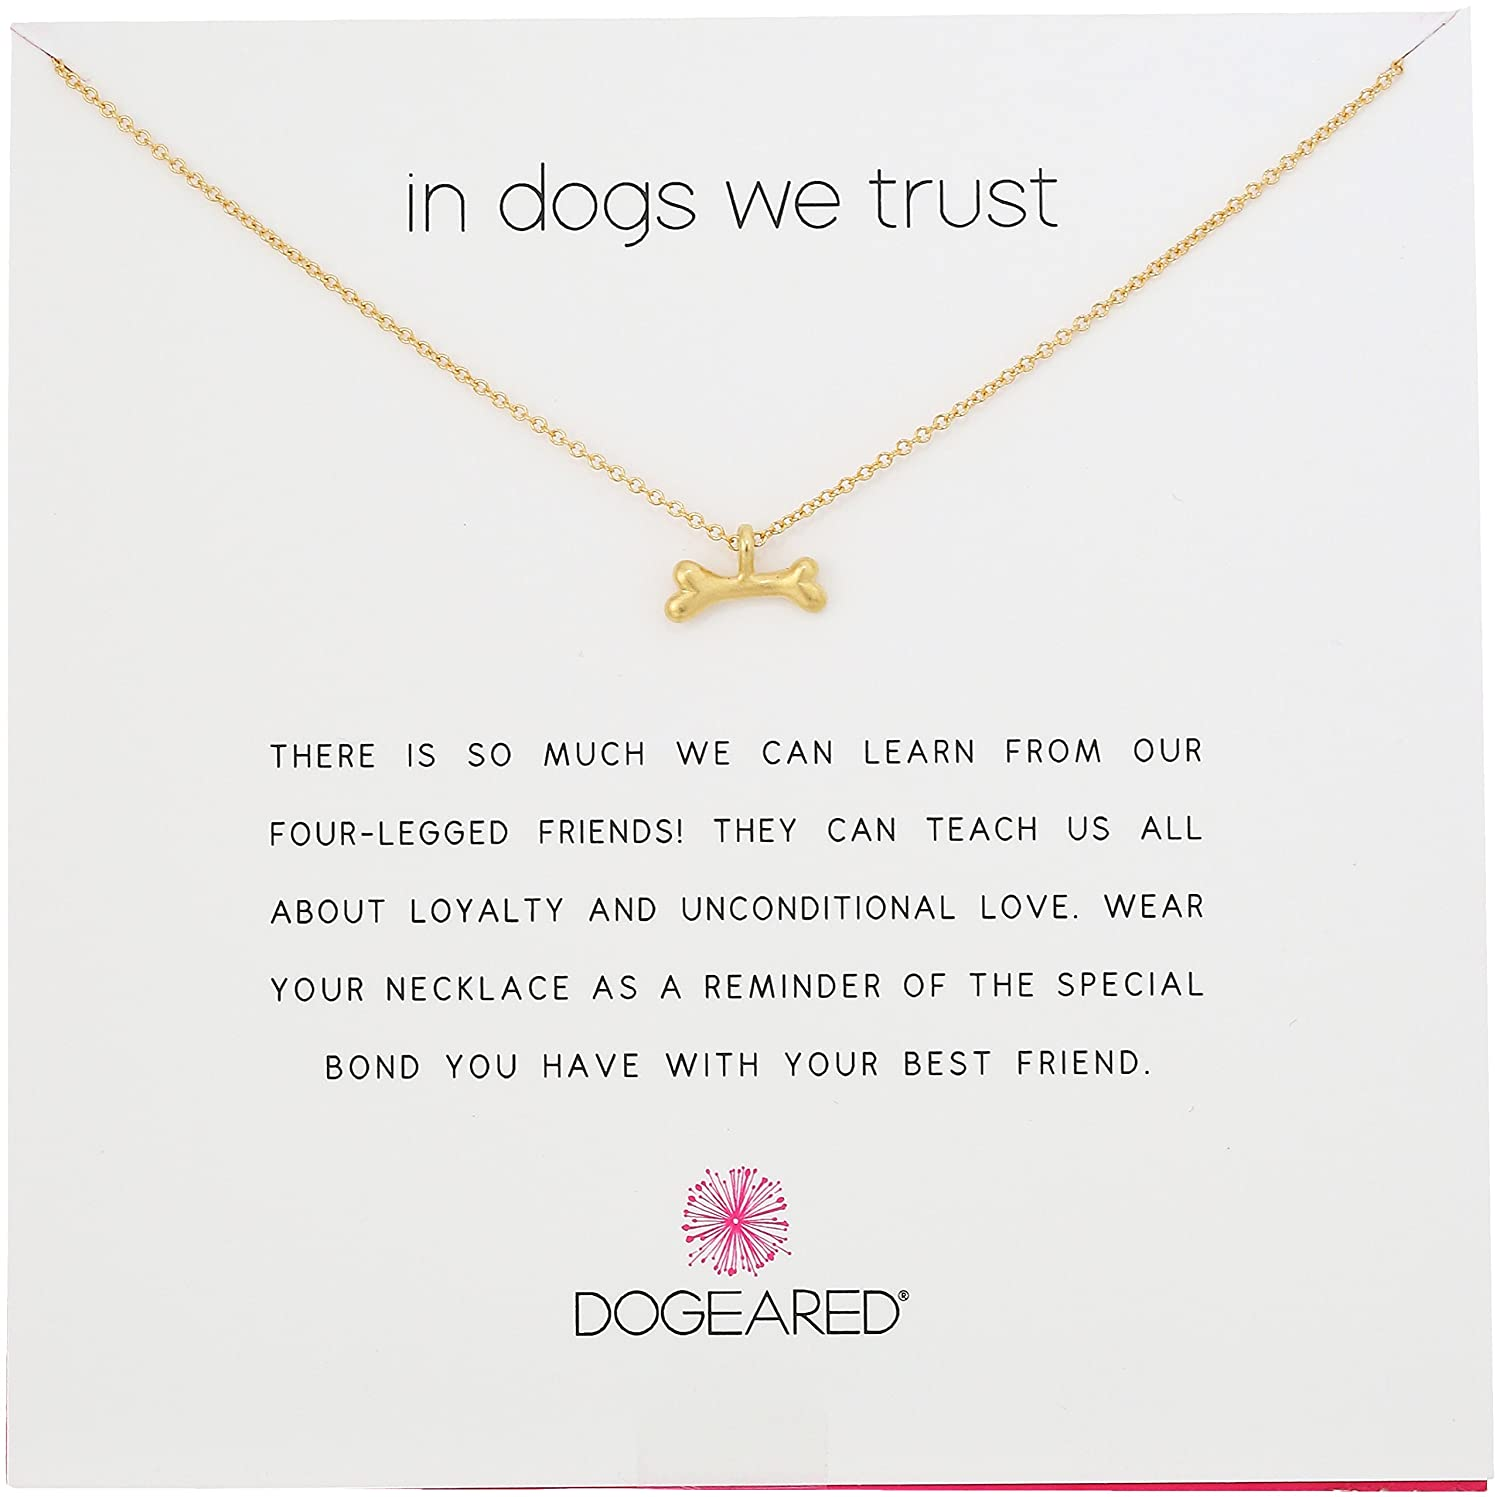 Dogeared Reminders In Dogs We Trust Bone Charm Necklace, 18 18 MG1273